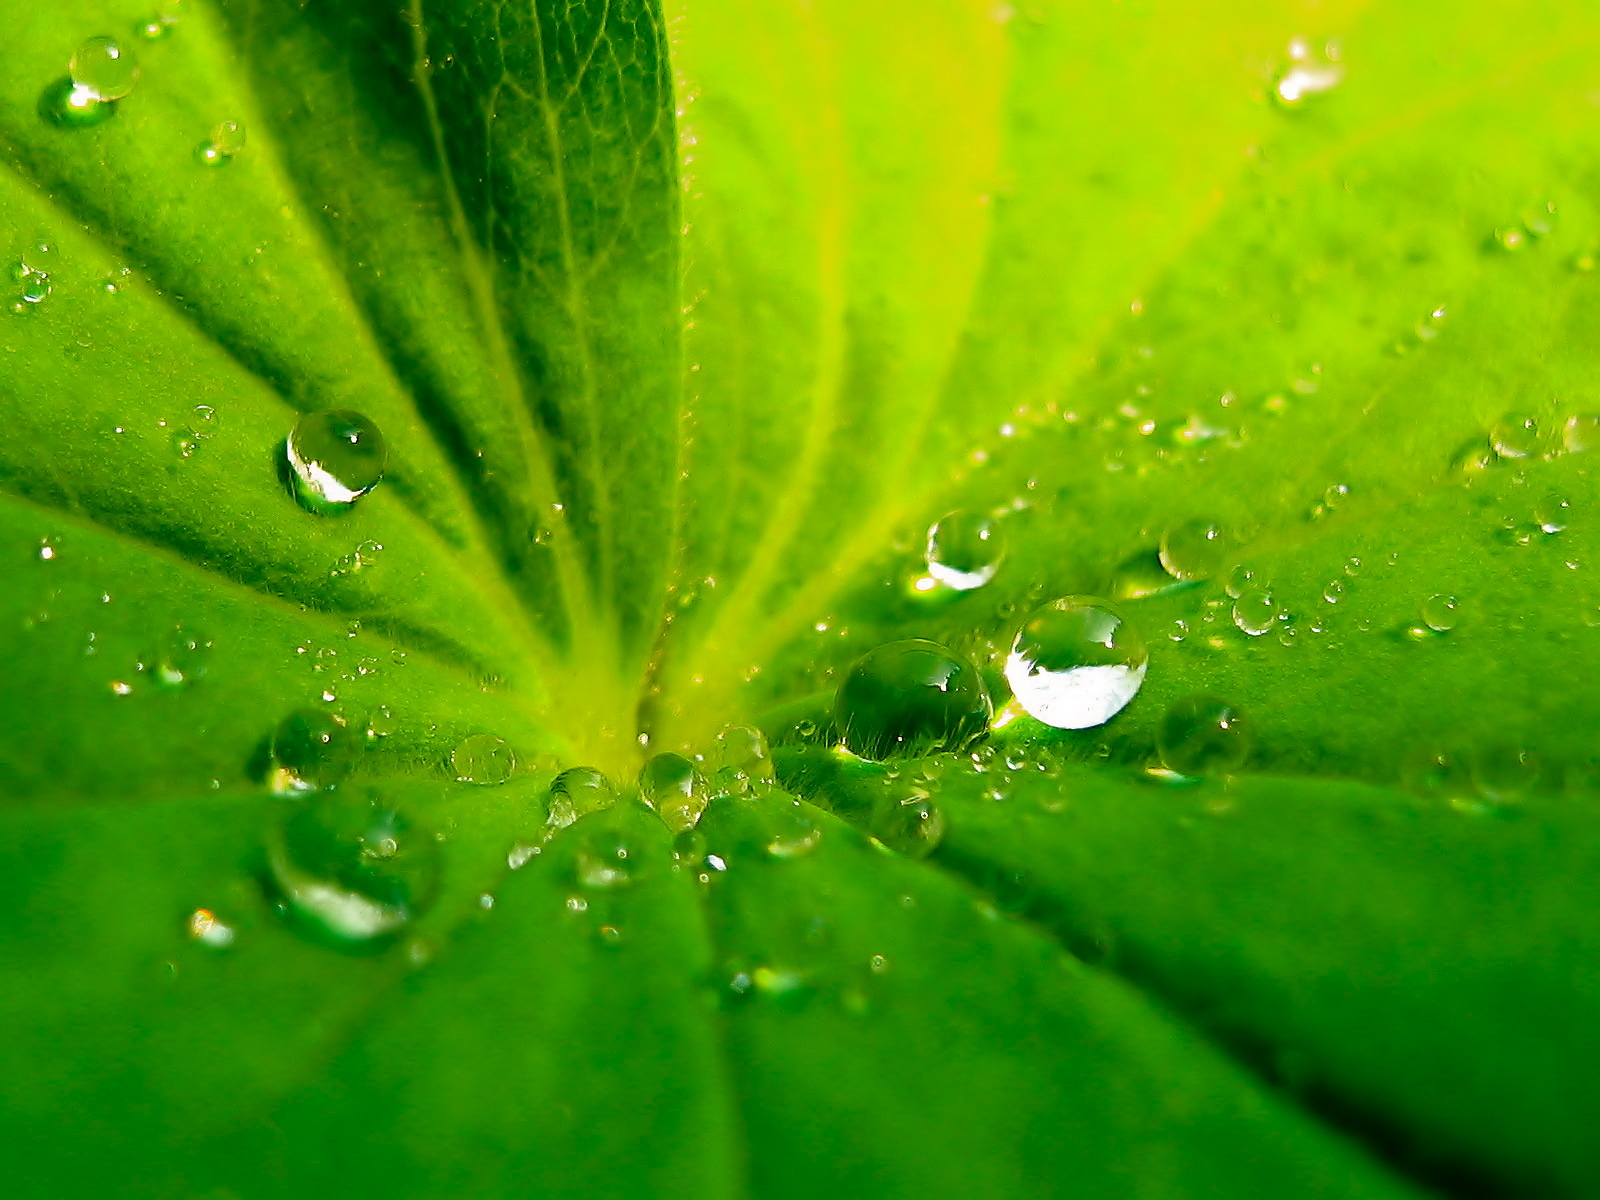 leaf drops on HD Wallpaper